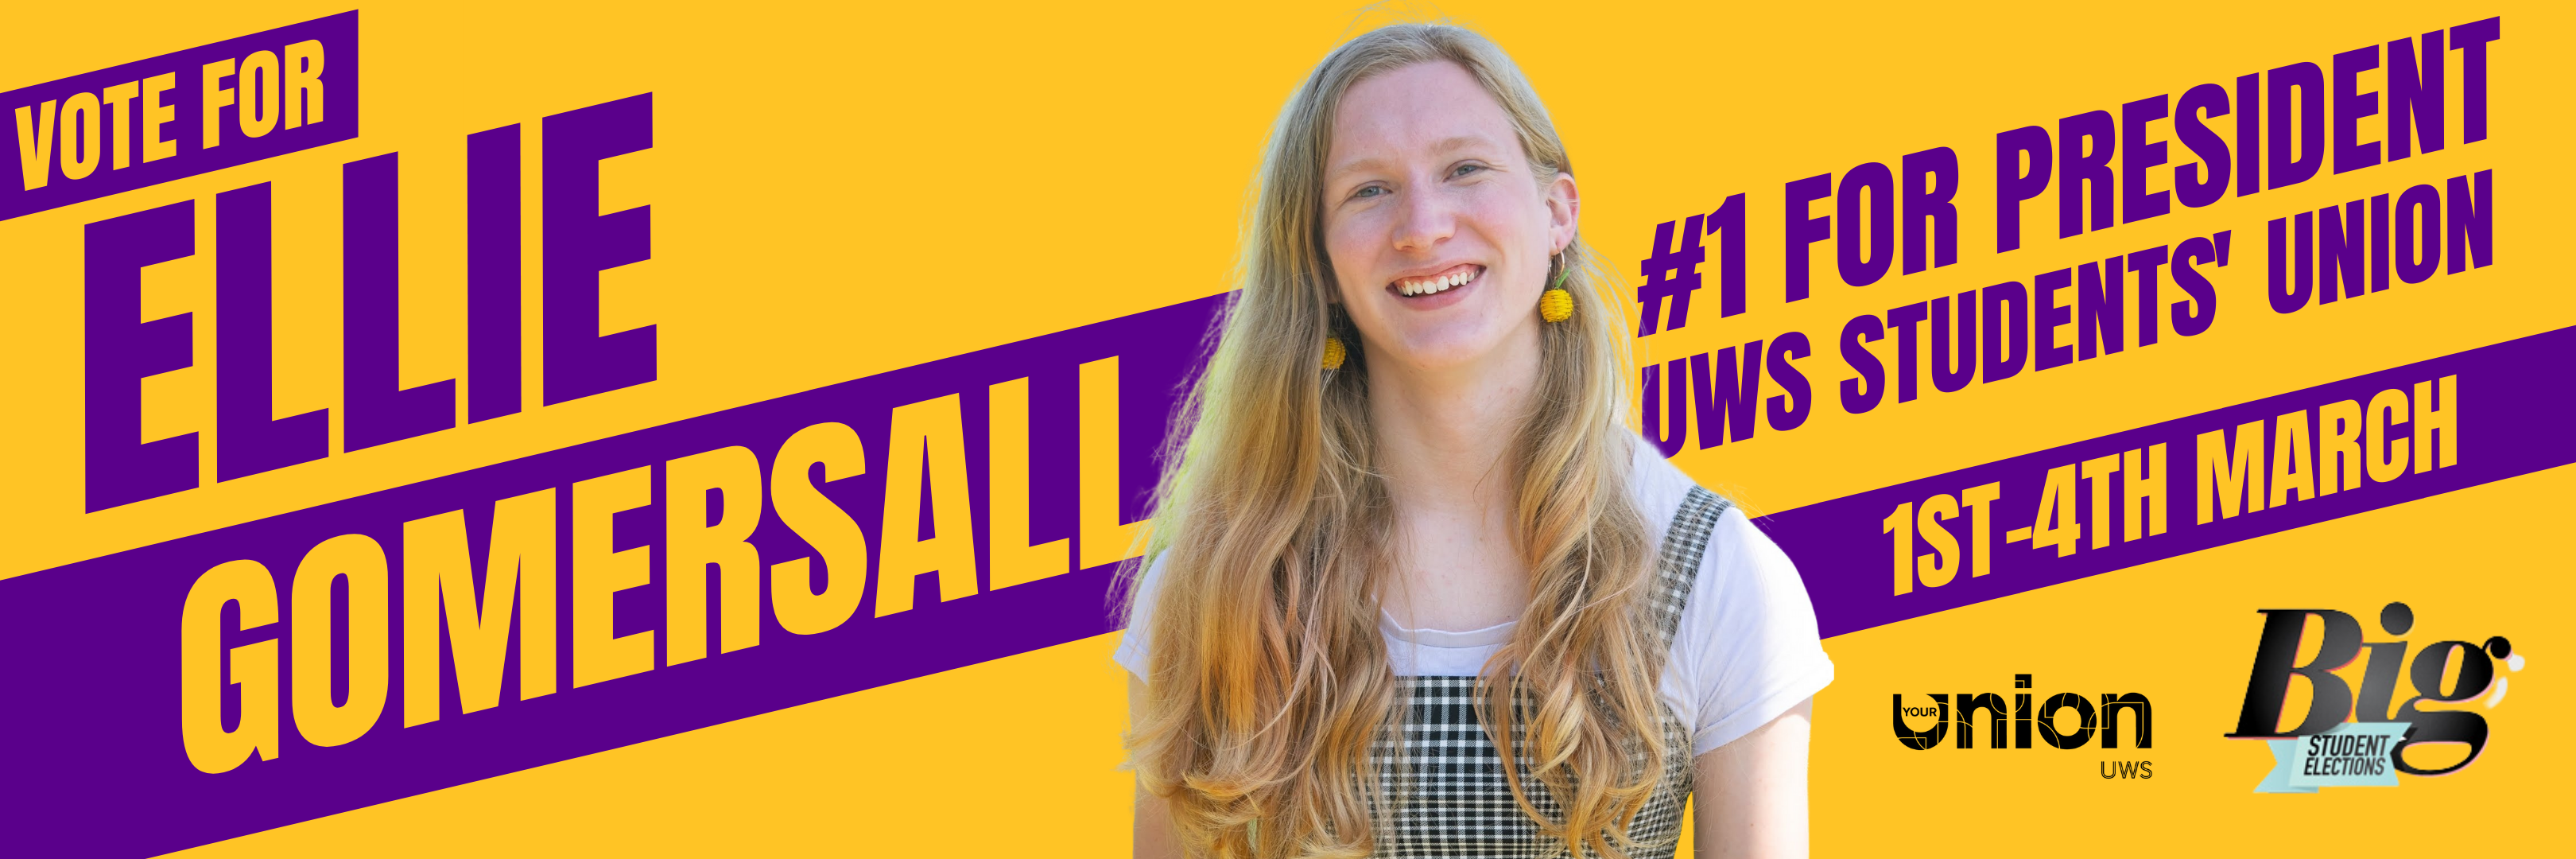 Vote for Ellie Gomersall #1 for President UWS Students' Union